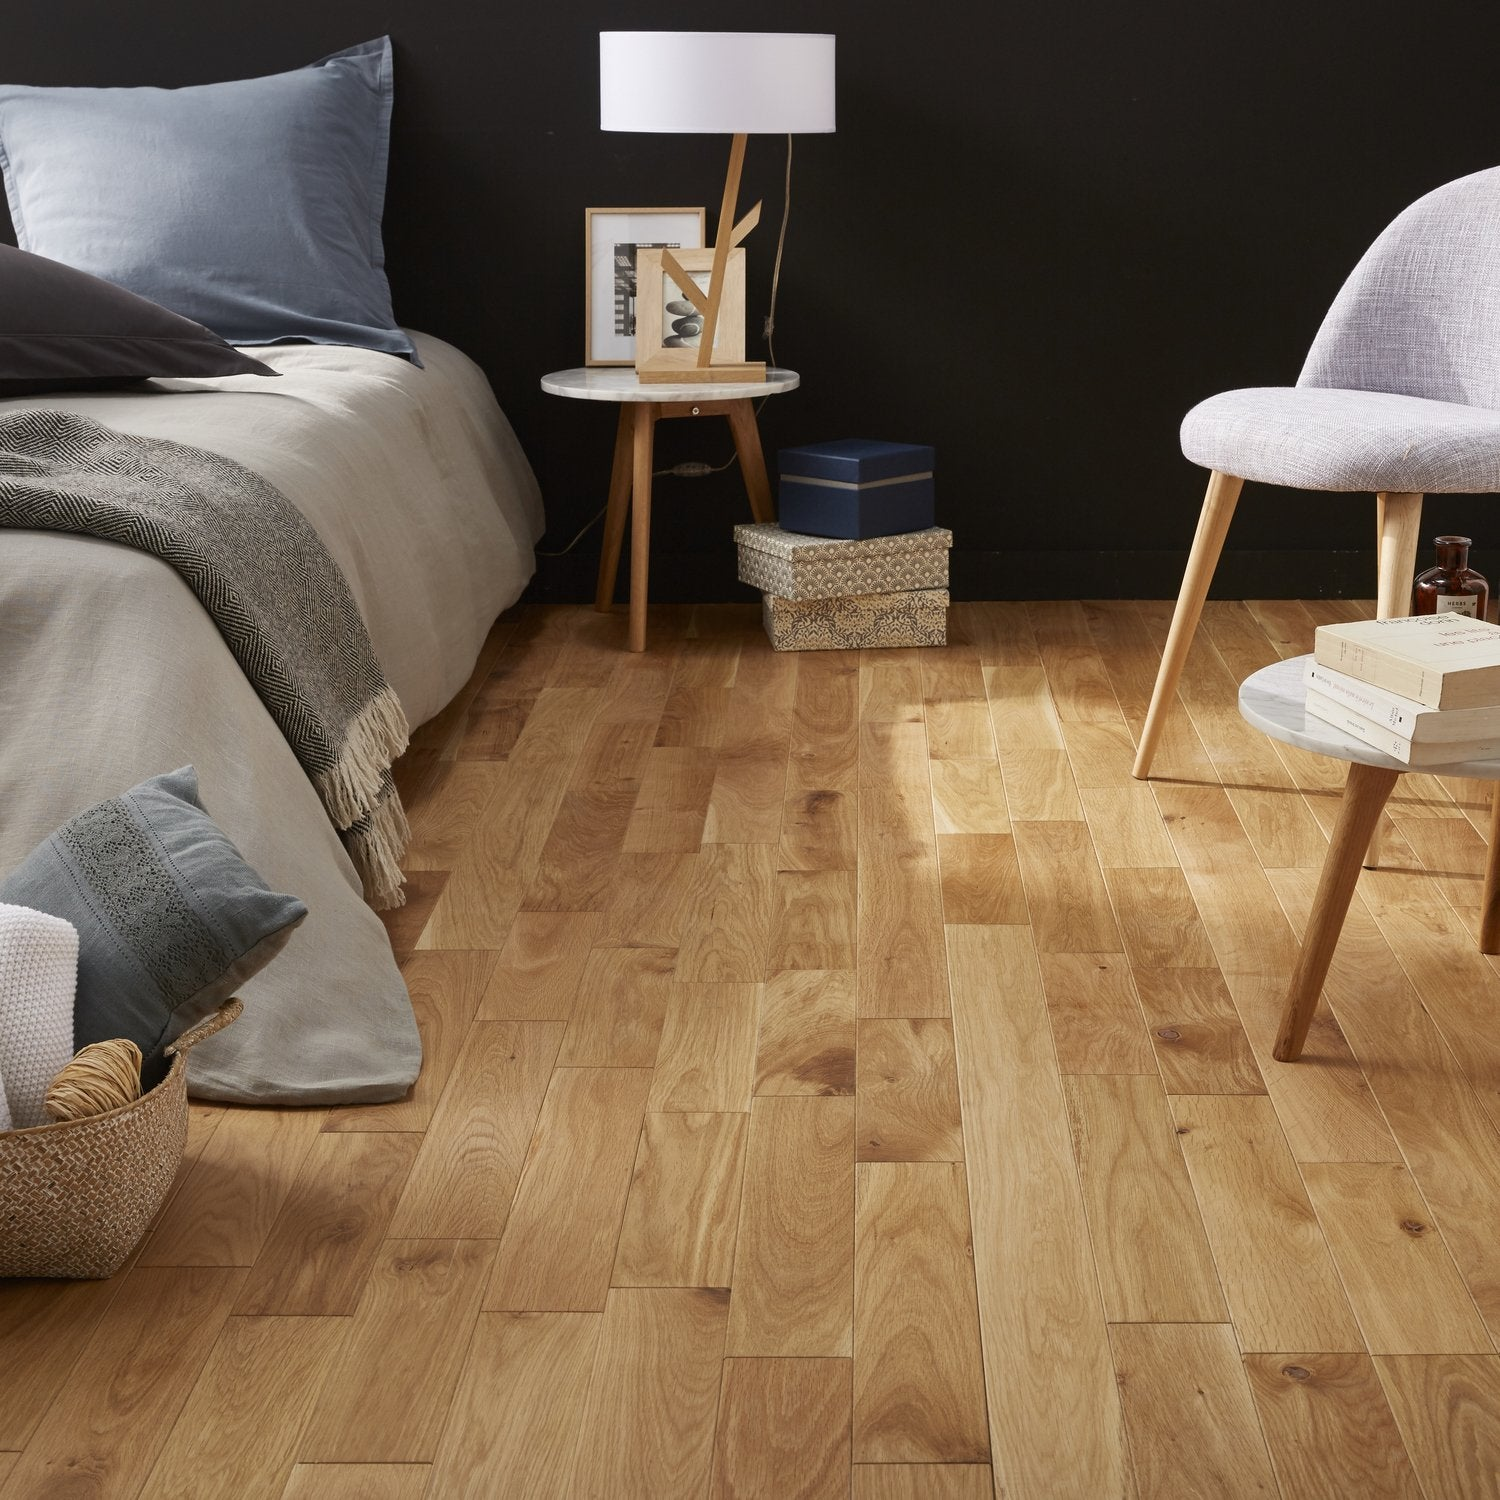 un parquet en ch ne blanc pour une chambre au style naturel leroy merlin. Black Bedroom Furniture Sets. Home Design Ideas